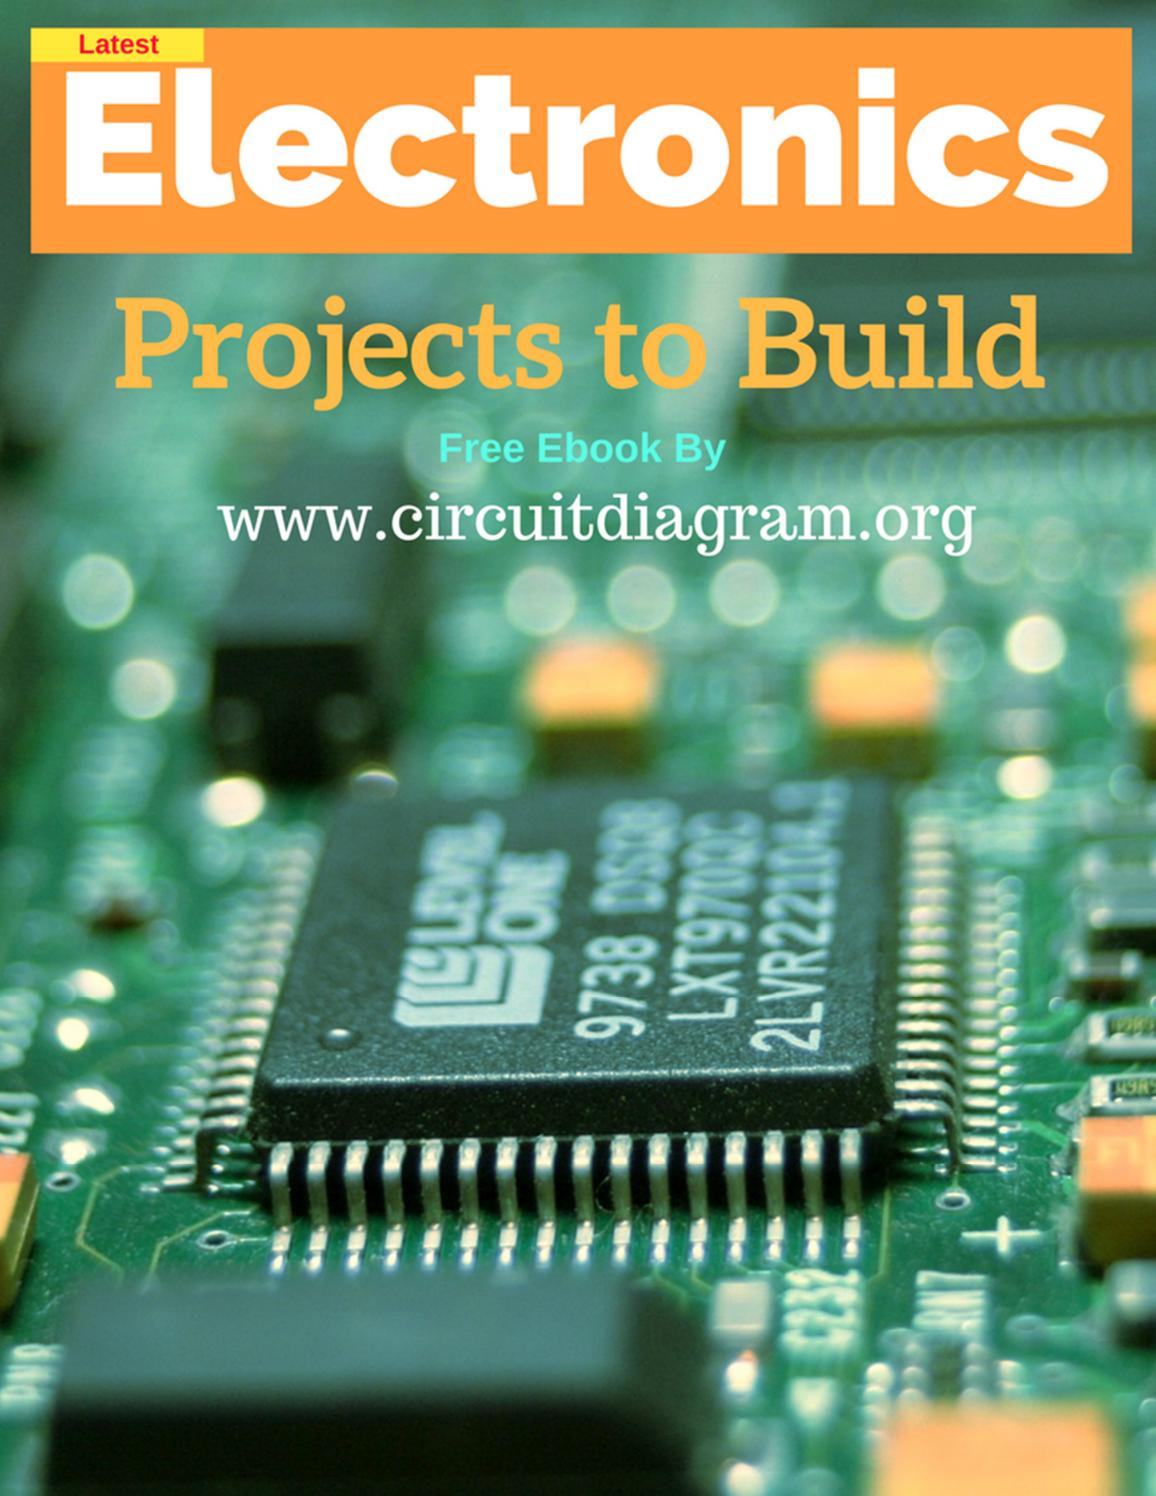 Latest Electronics Projects To Build Pdf Ebook By Circuitdiagramorg Circuit Diagram Issuu